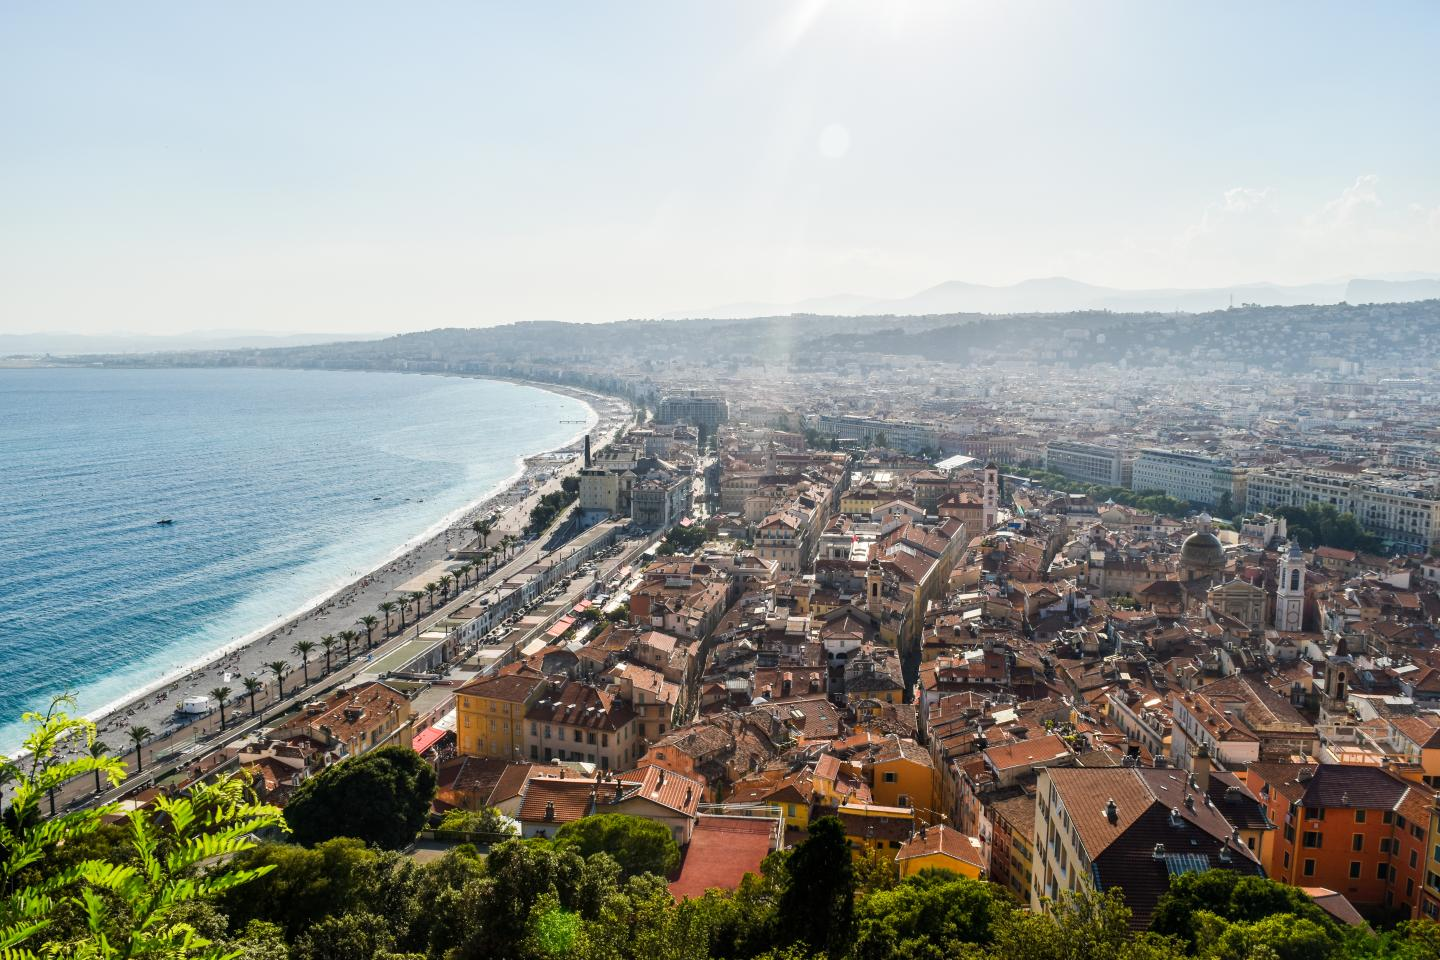 View of Nice Côte d'Azur seen on summer teen travel program